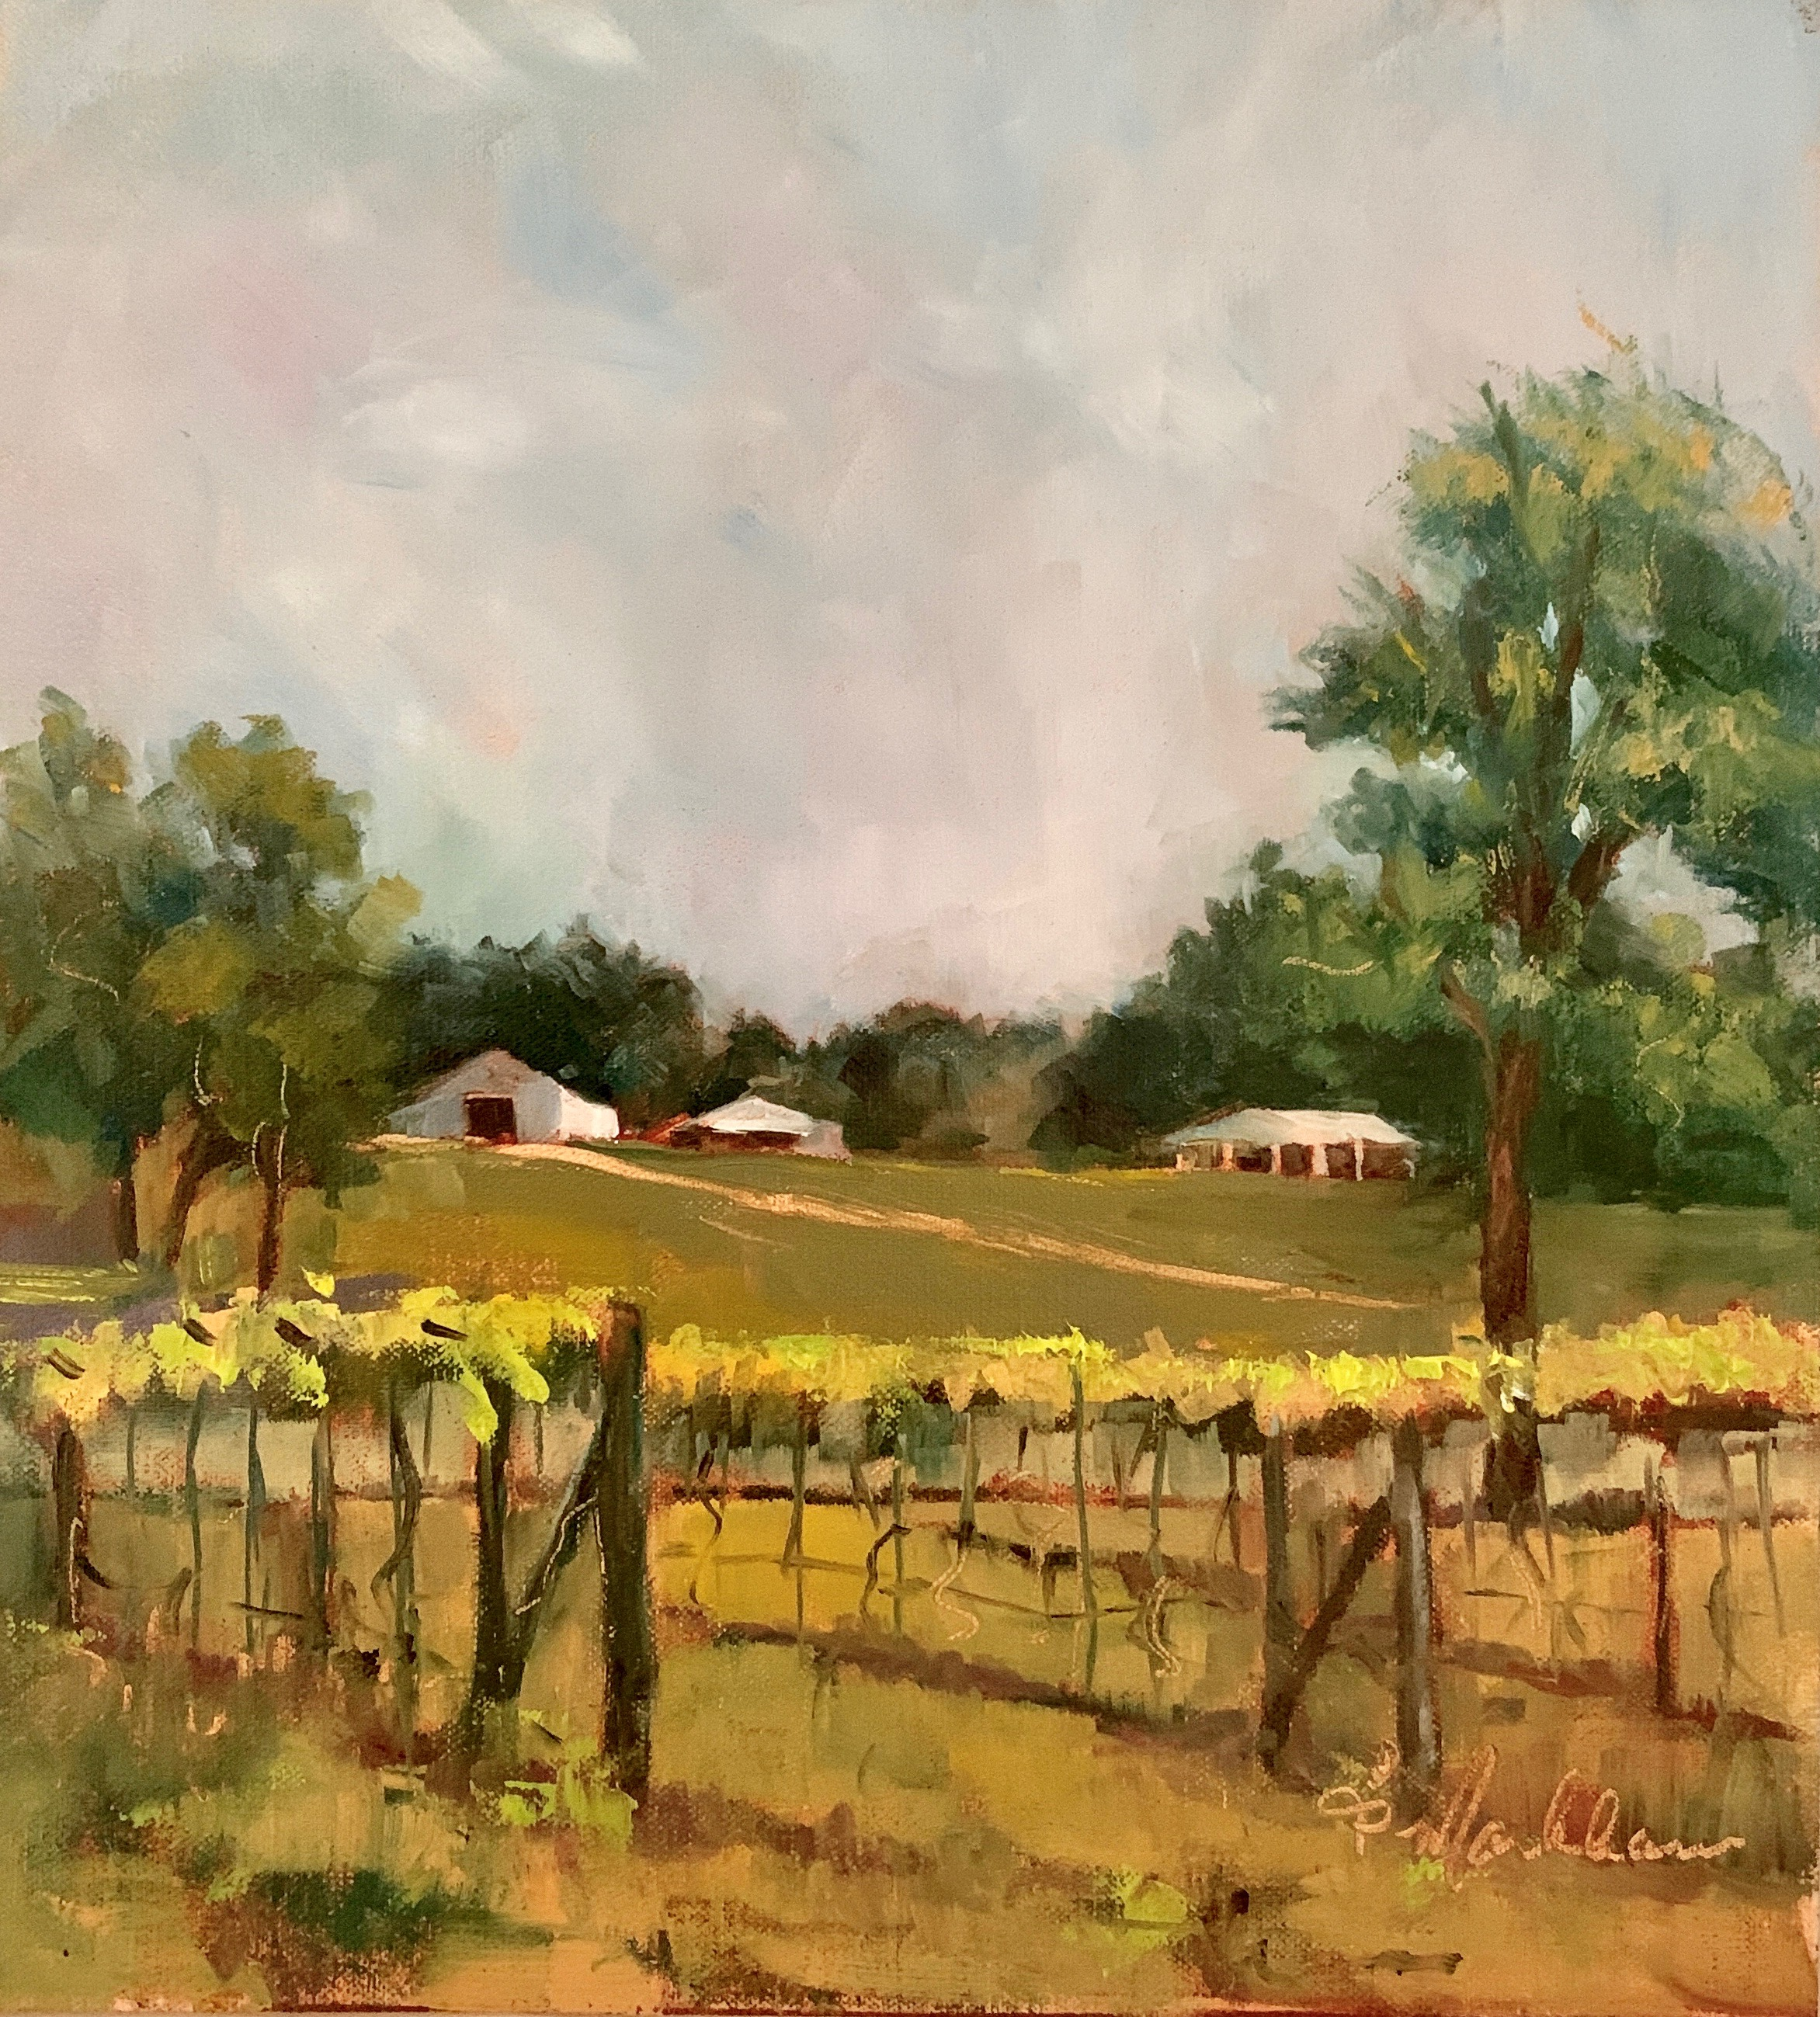 In the Vineyards, 9x 12, oil on canvas; $300